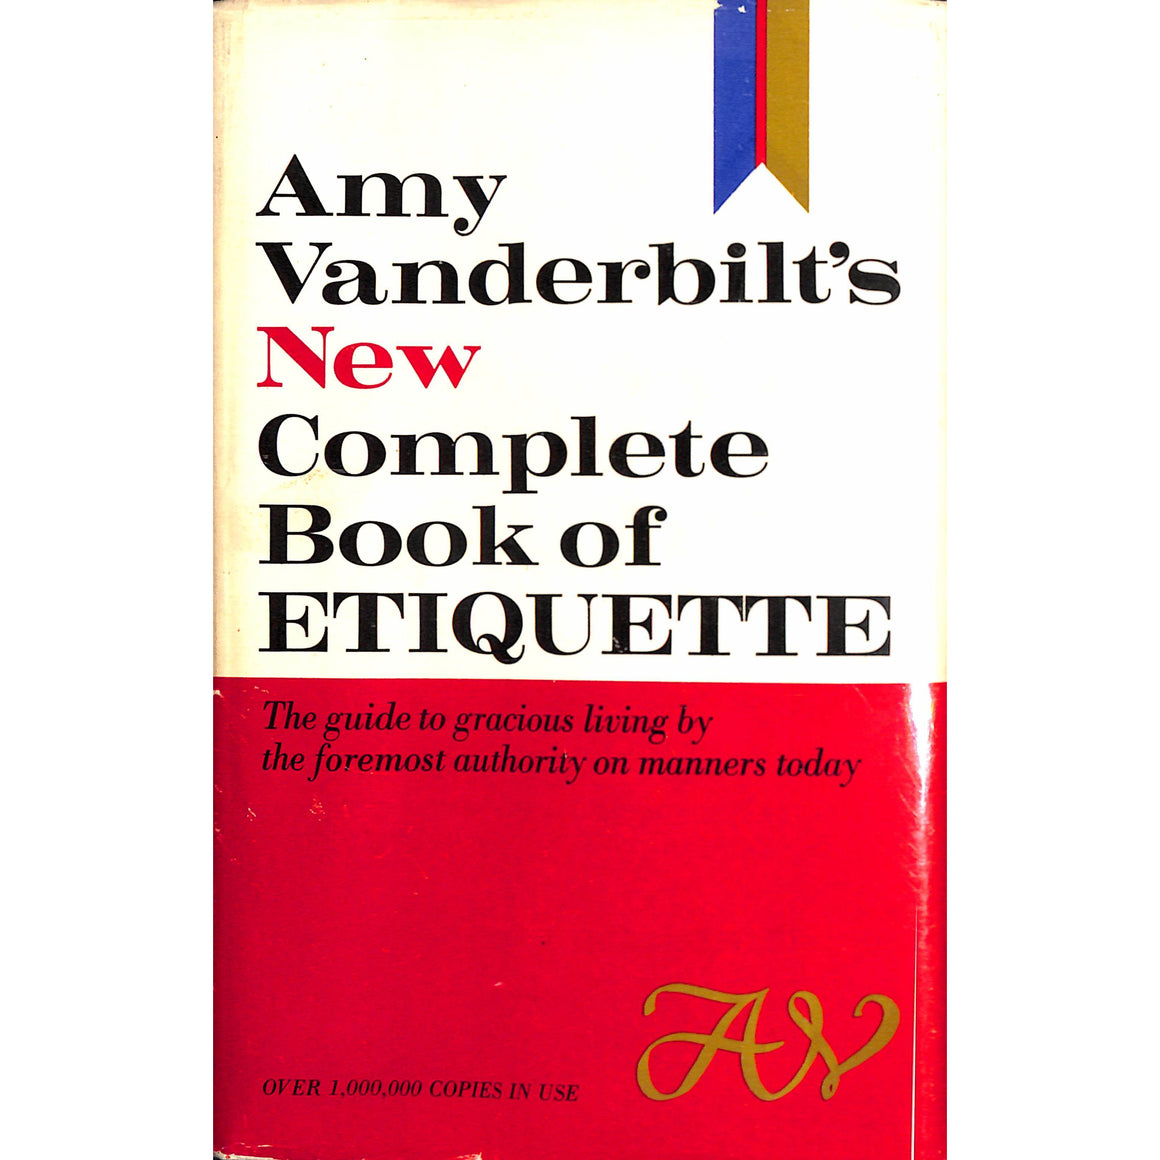 Amy Vanderbilt's New Complete Book of Etiquette